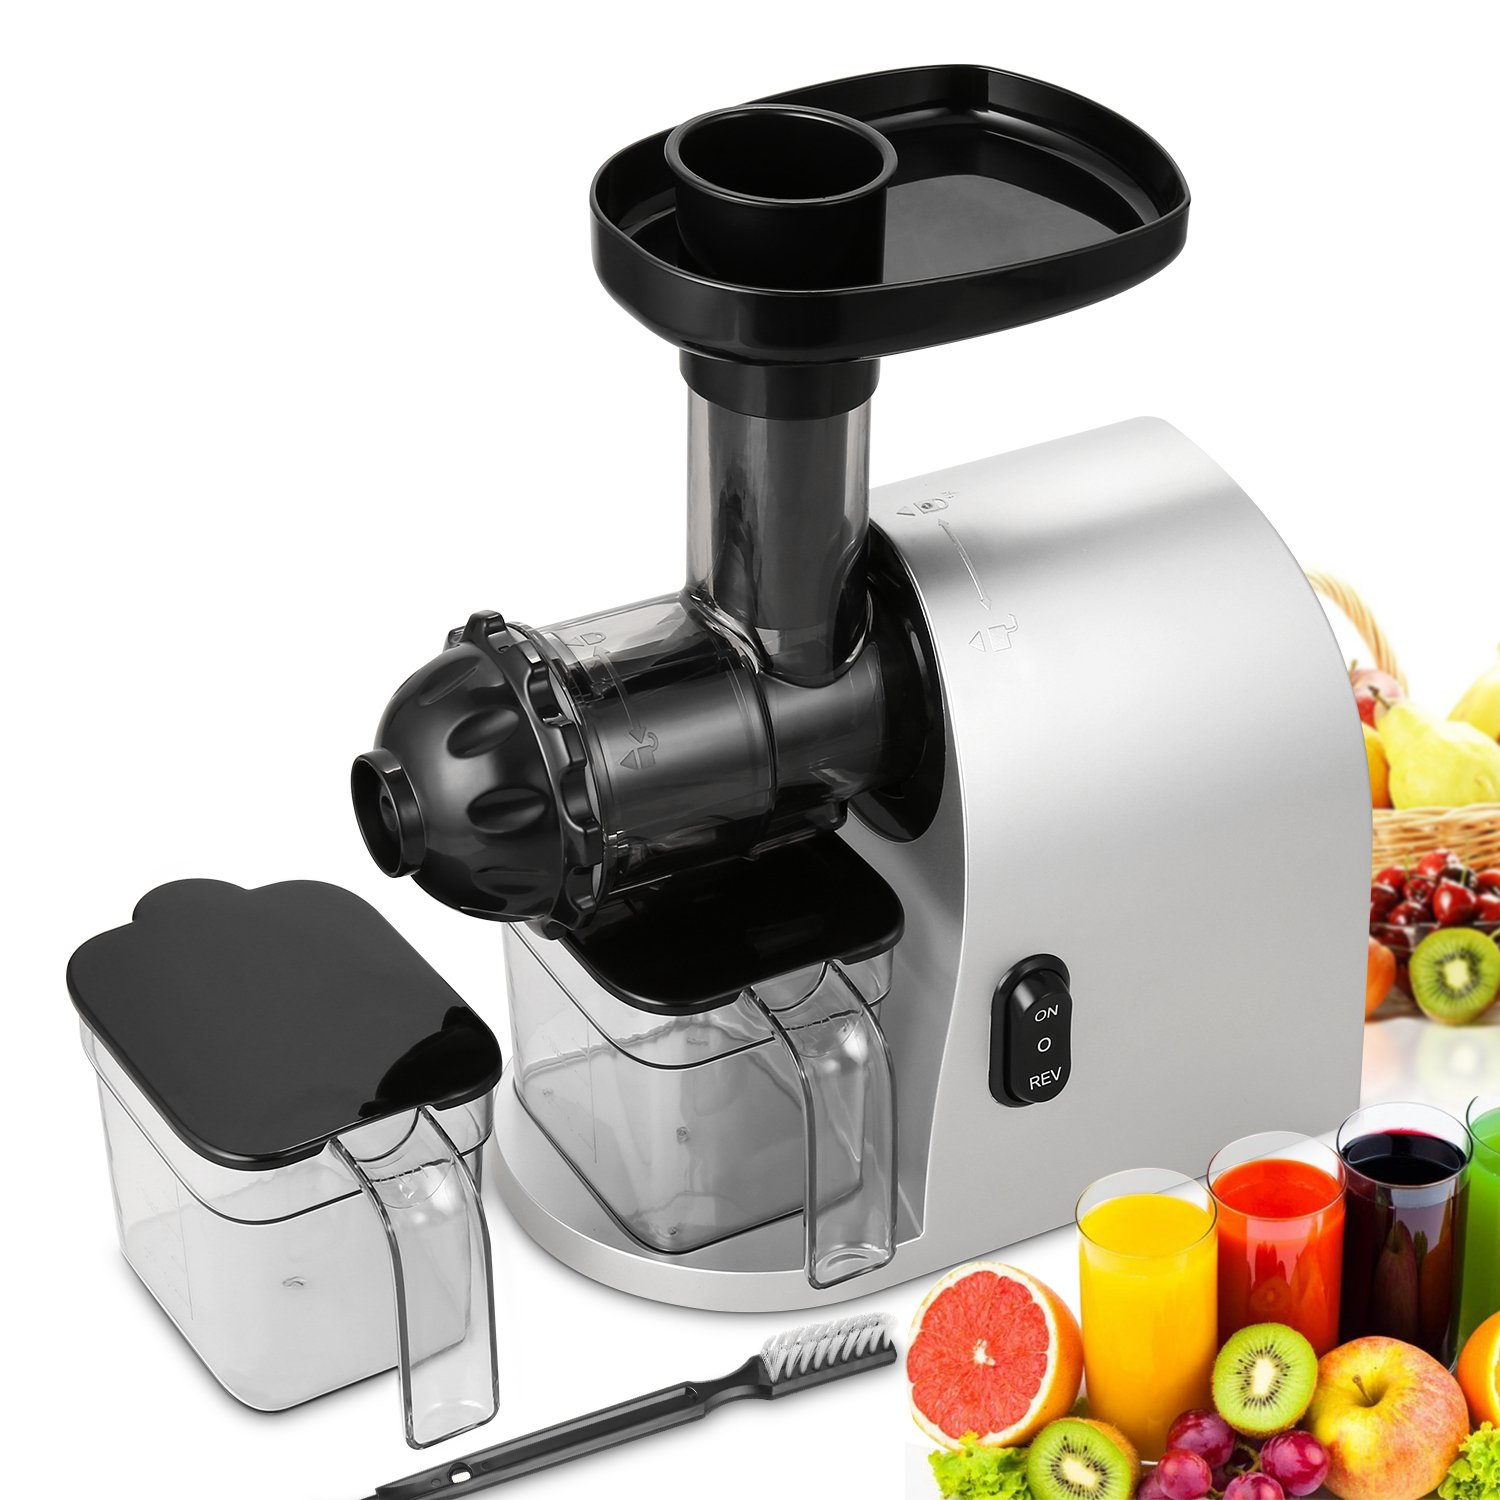 200W Electric Low Speed Masticating Juicer Lowest Noise Juicer Machine with Cleaning Brush Bigger Container Juicer